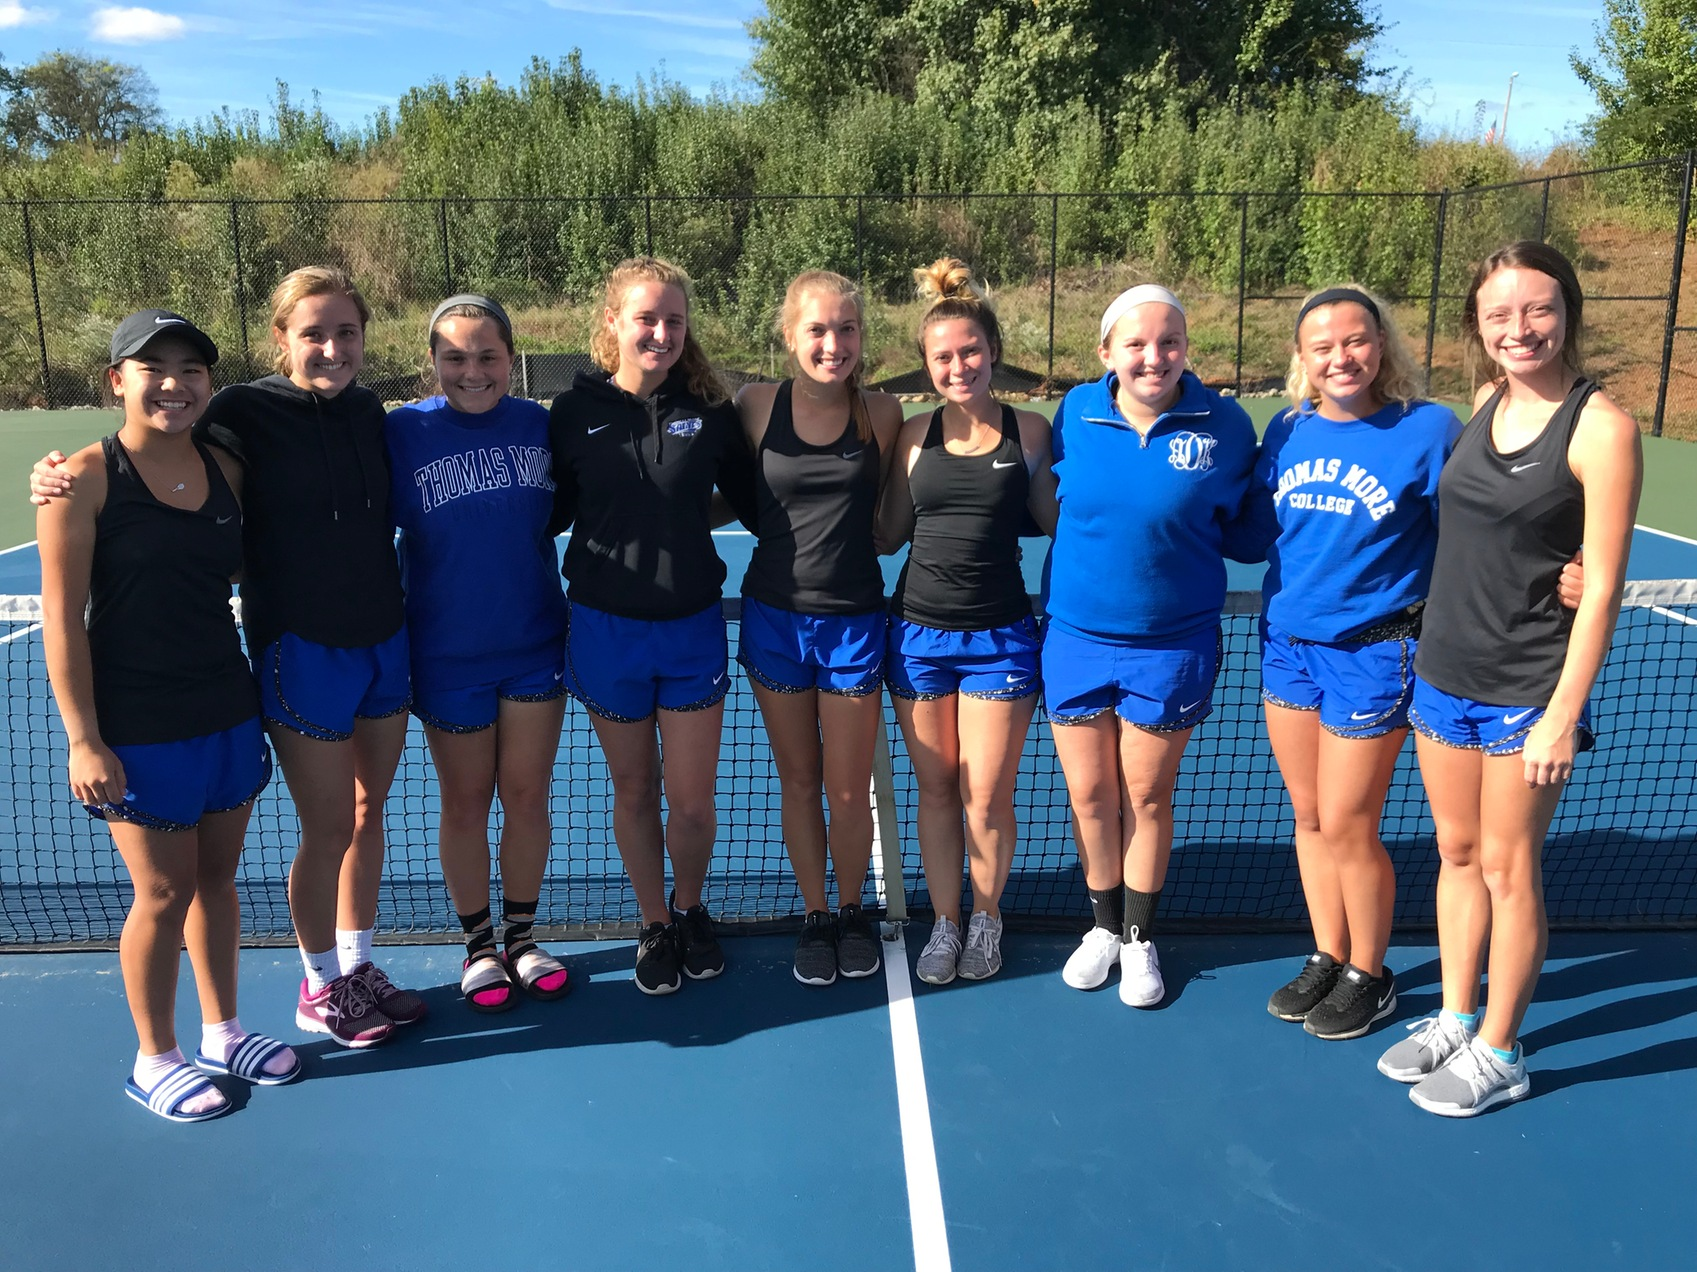 Women's Tennis Closes Out Fall Season With a 9-0 Win